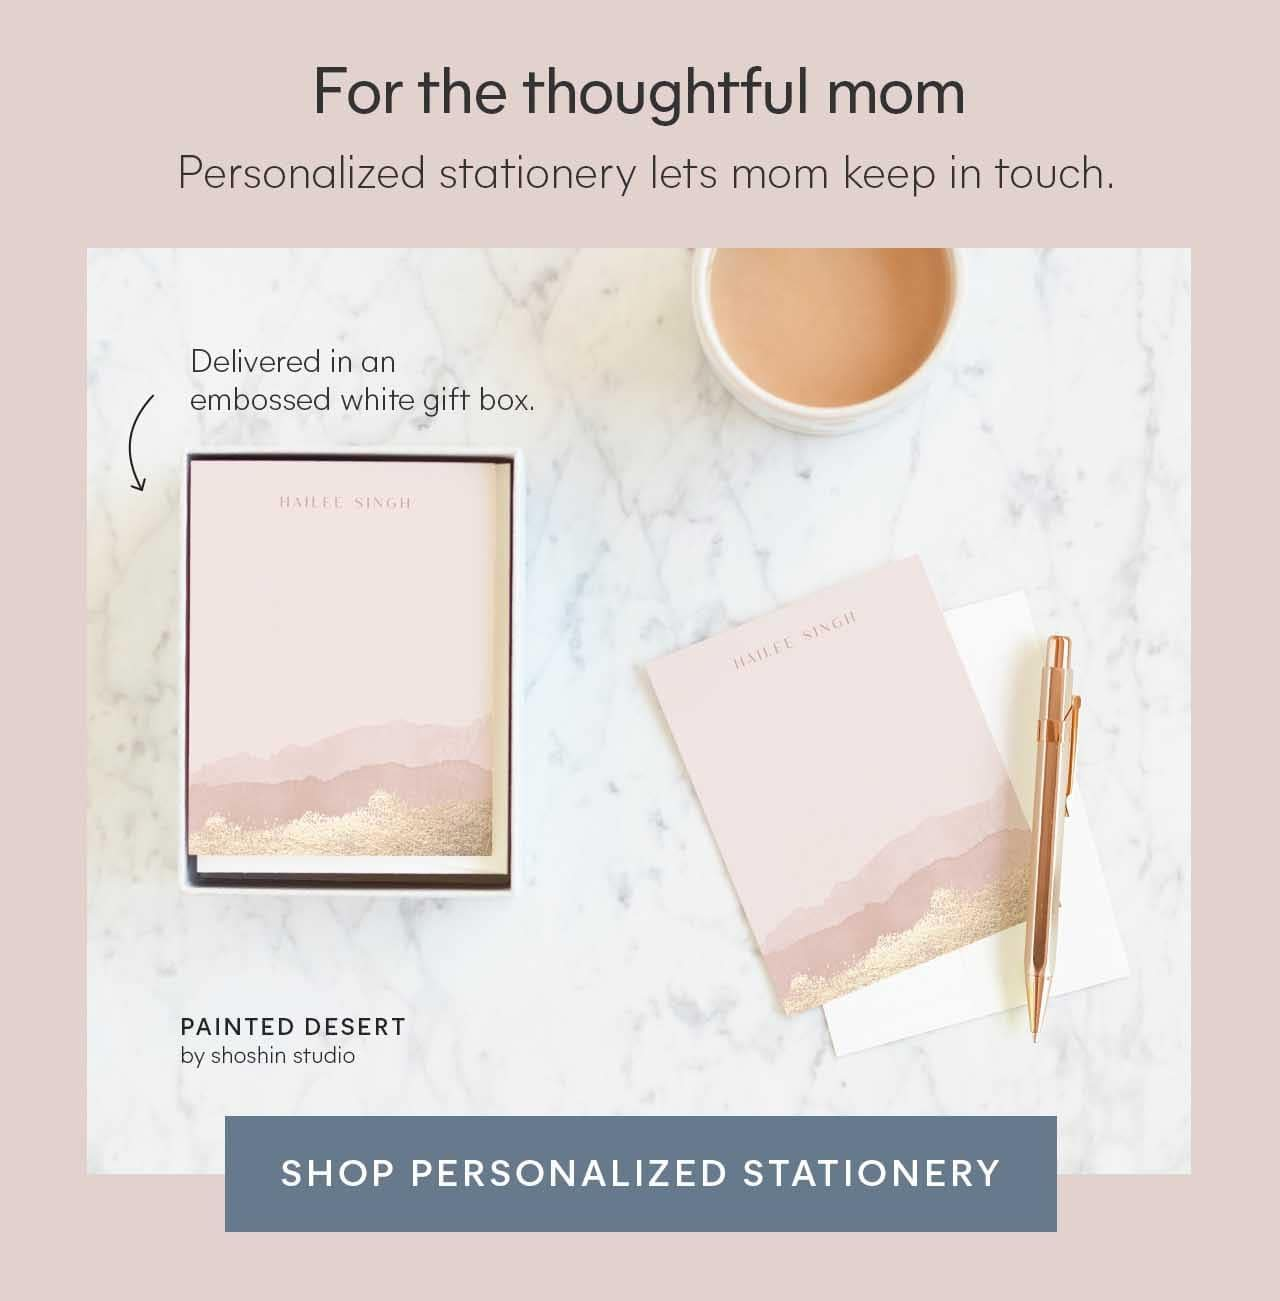 Shop Personalized Stationery